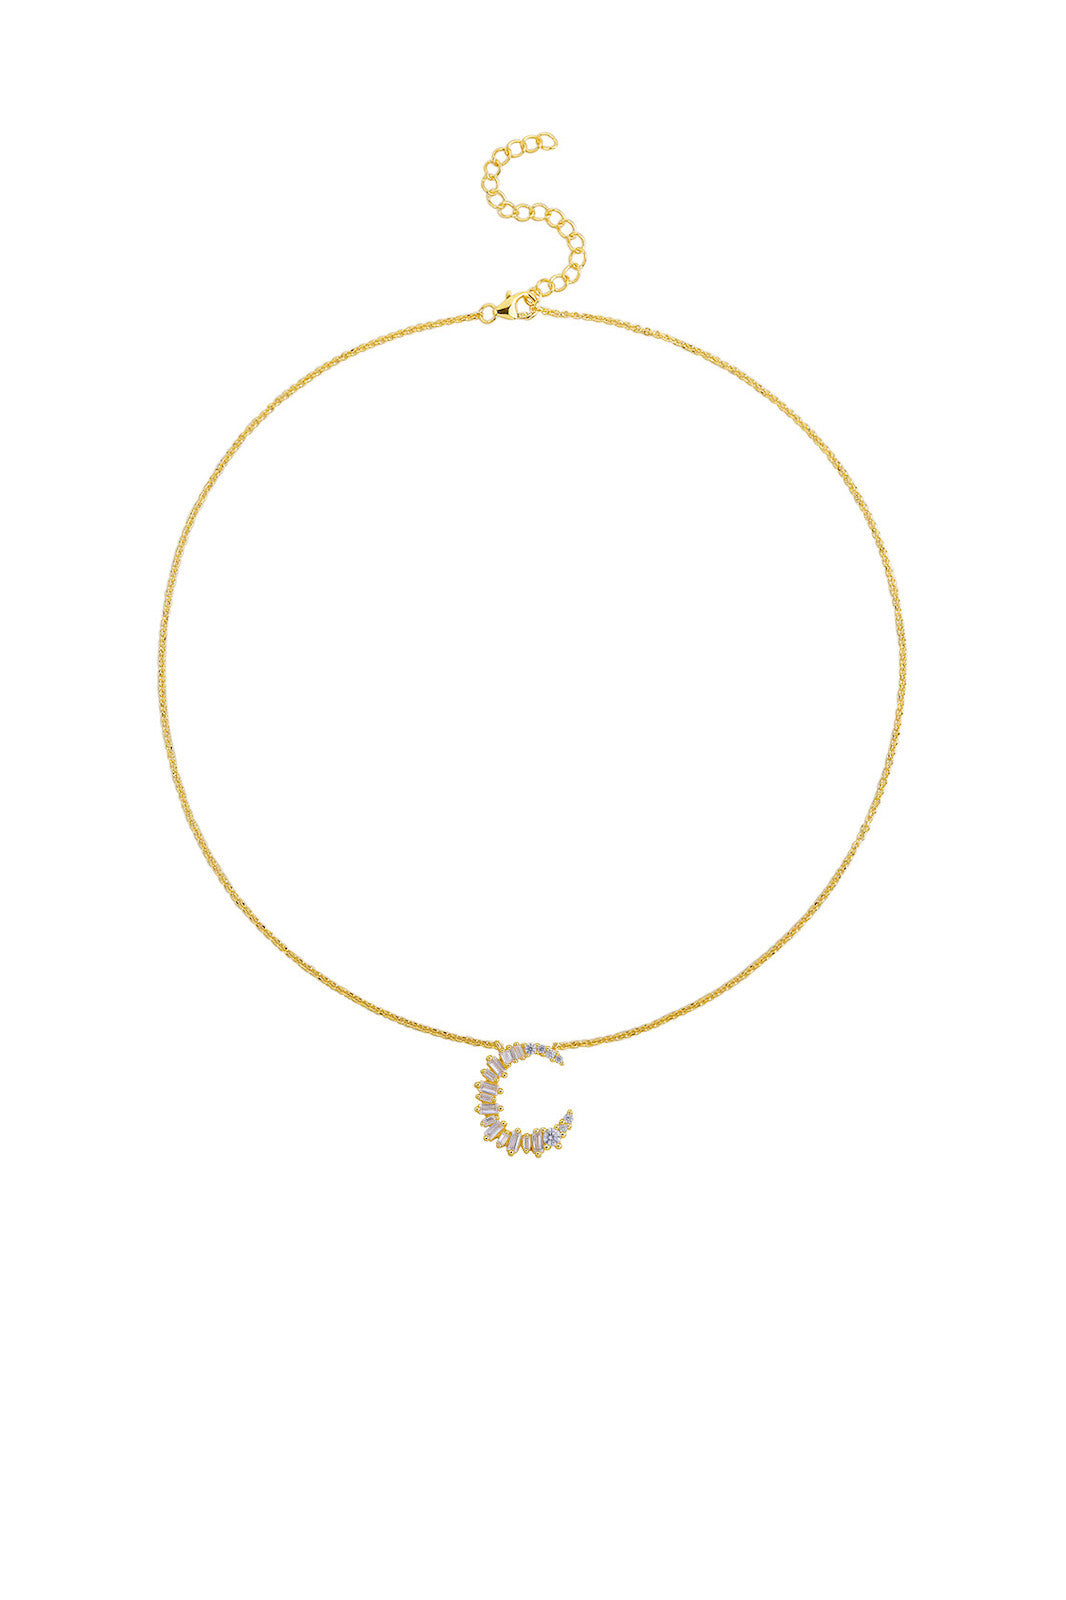 Gold Plated Sterling Silver Initial Necklace - Letter C Detail